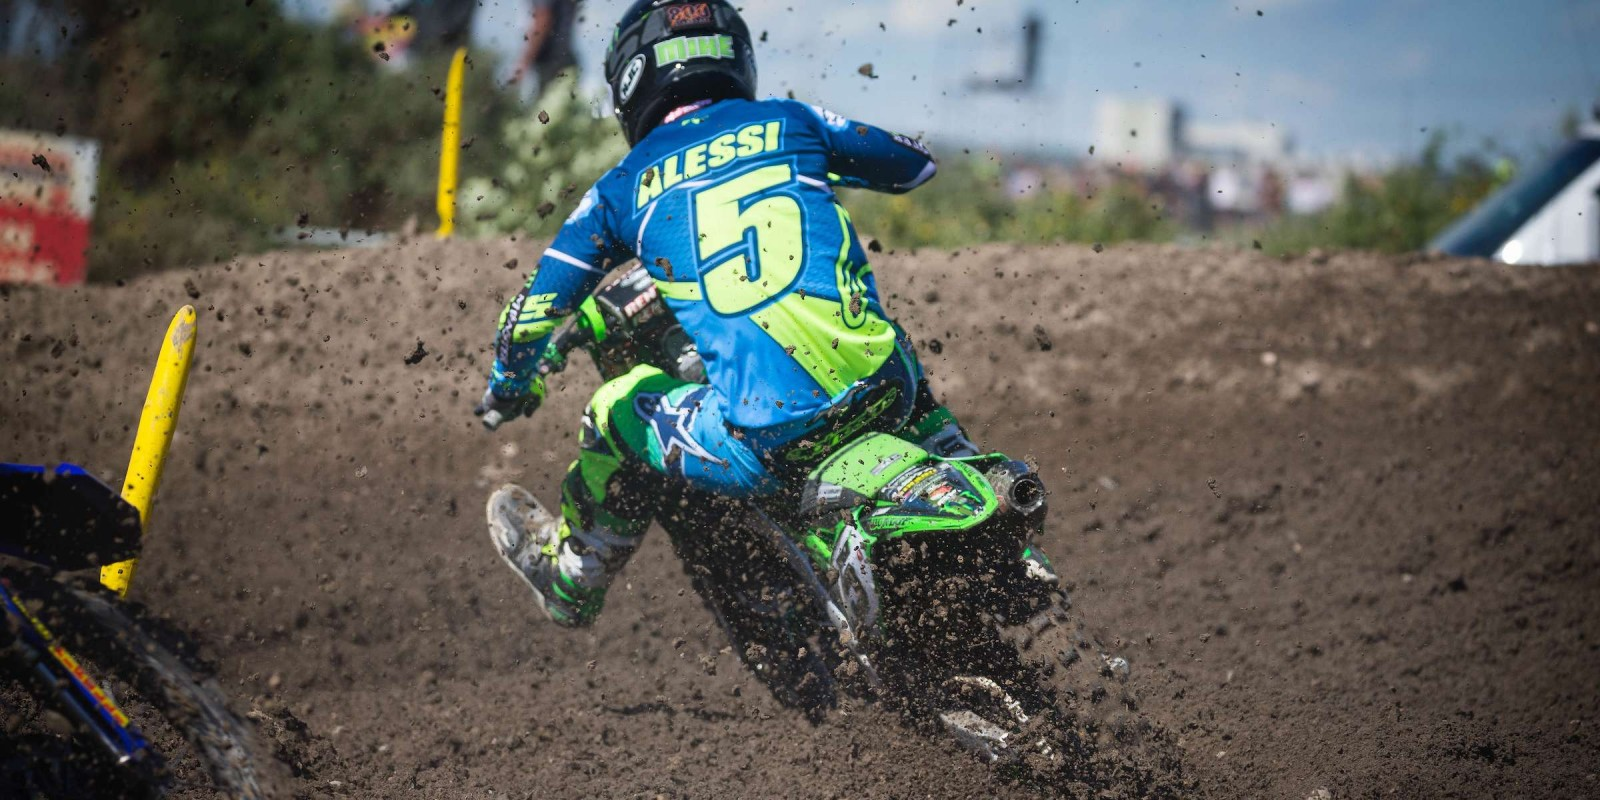 Action shots from round 3 of the 2017 Canadian Motocross Nationals in Calgary, Alberta